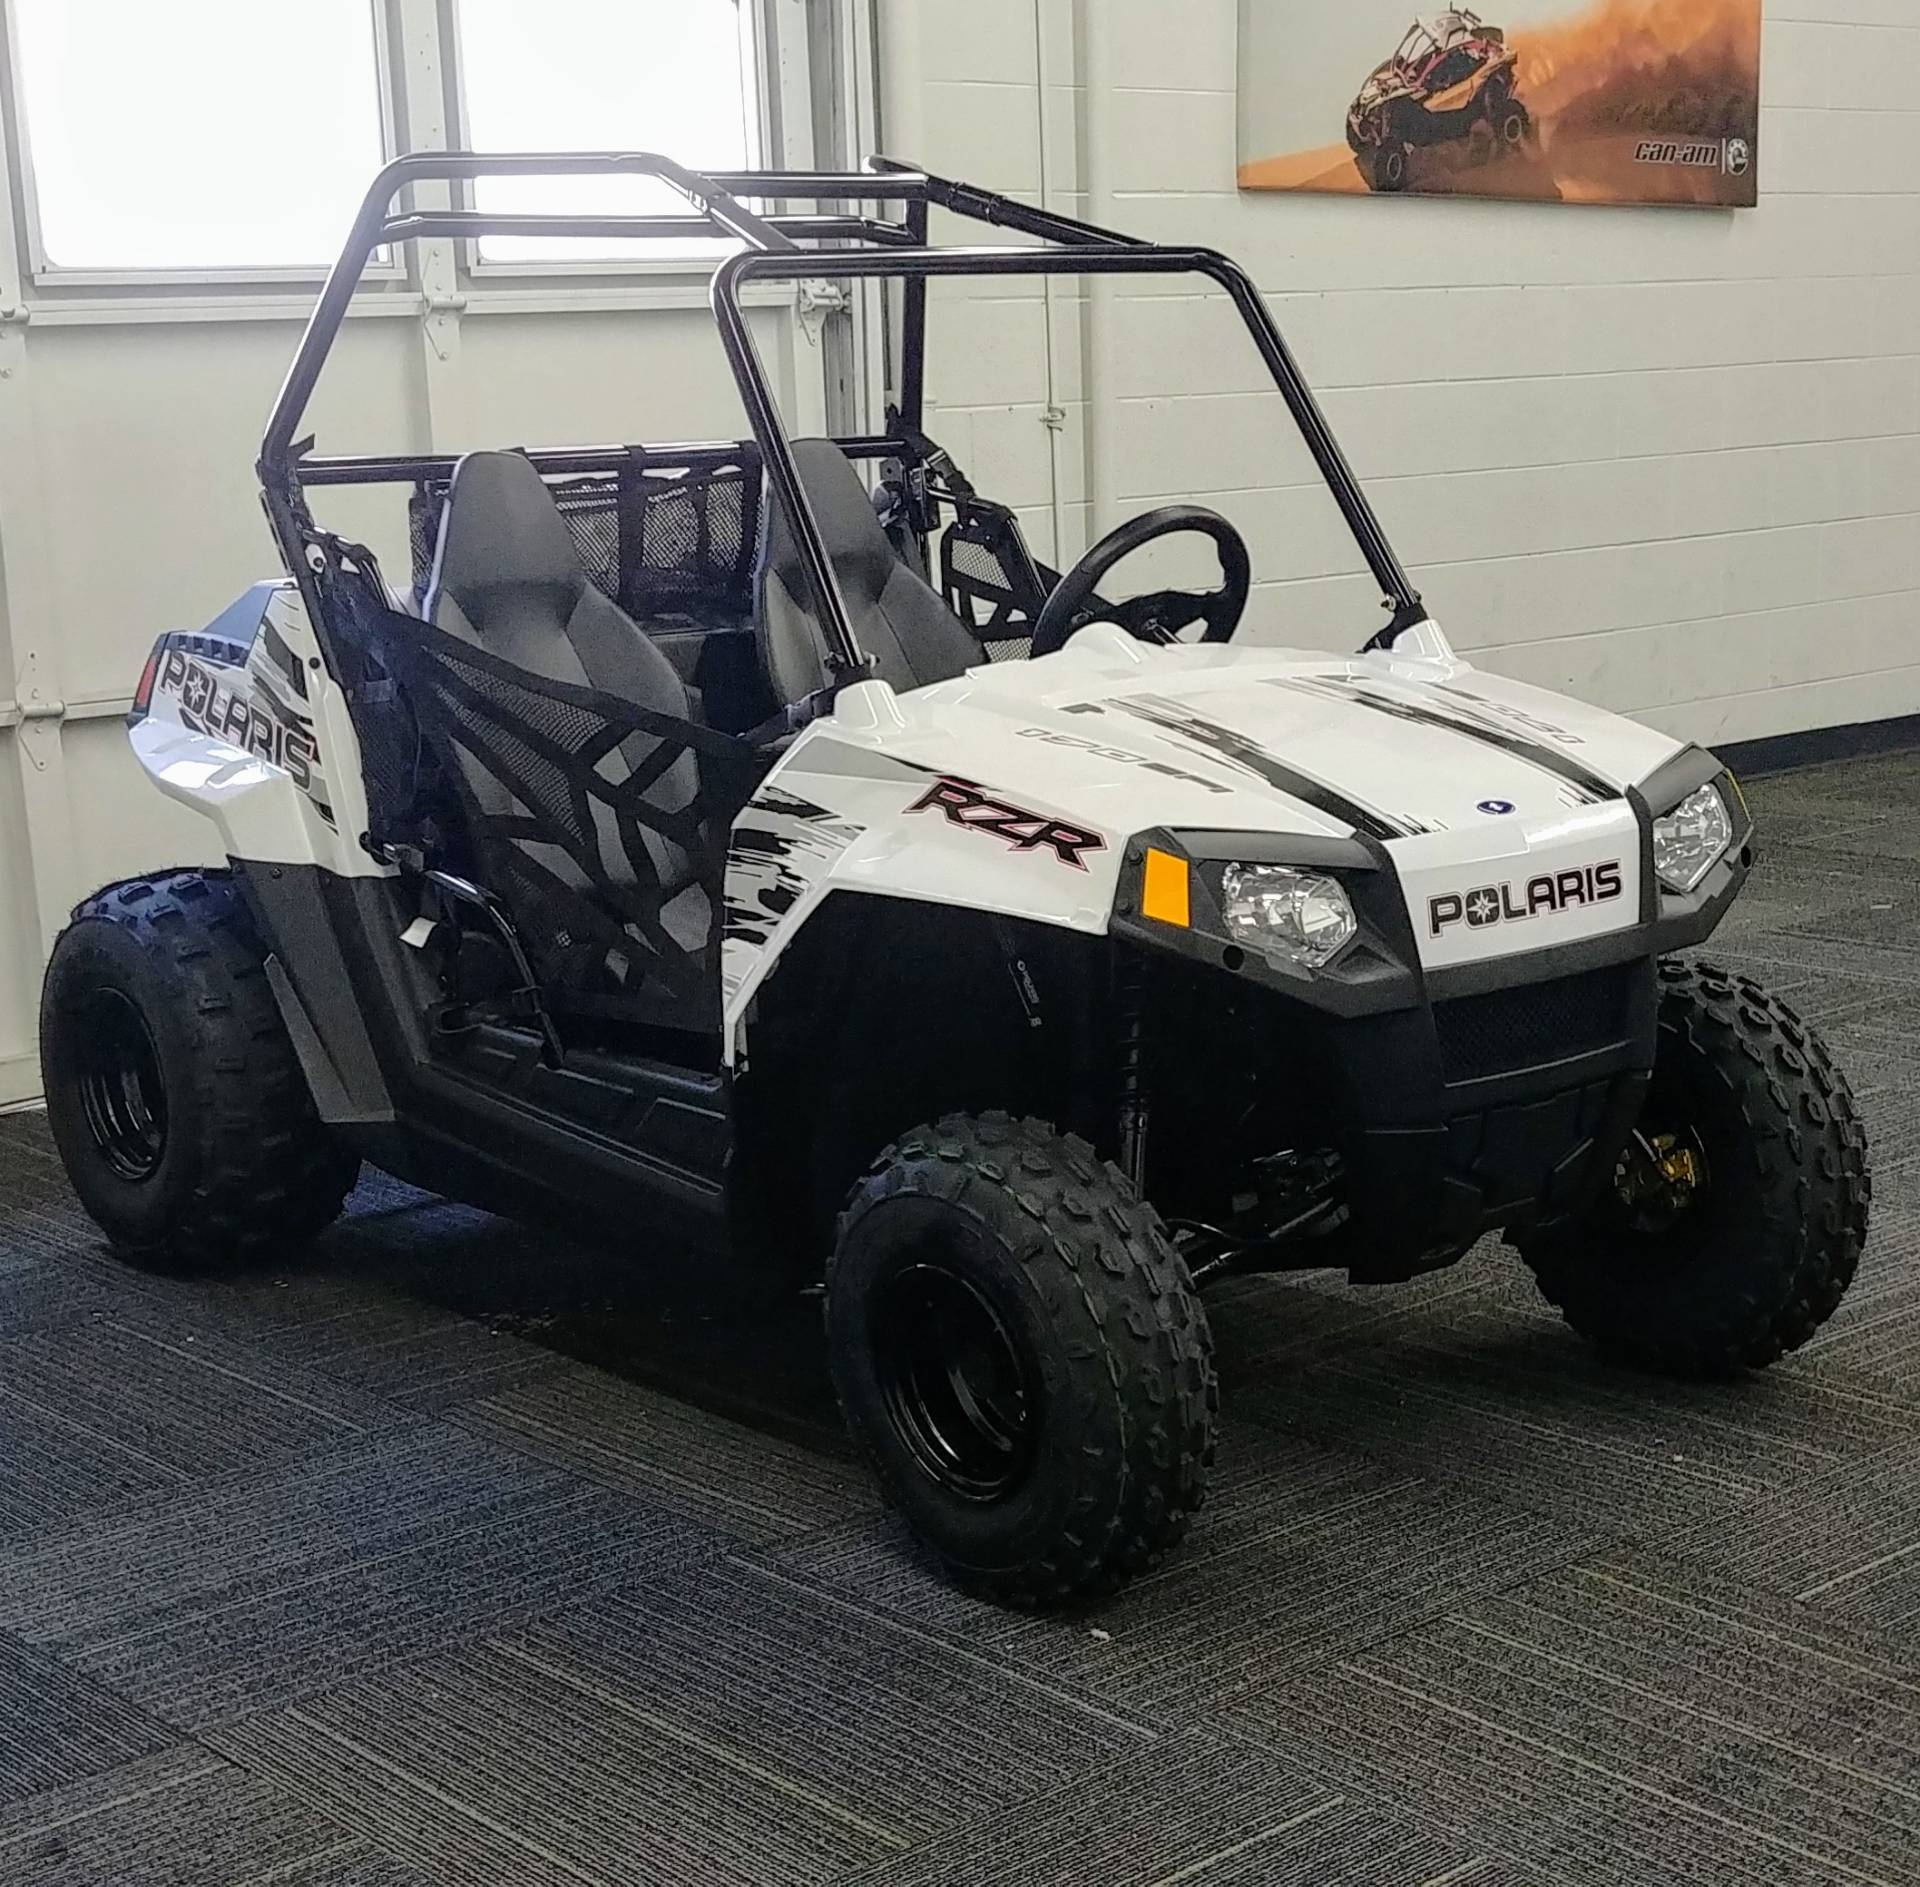 2020 Polaris RZR 170 EFI in Ontario, California - Photo 6